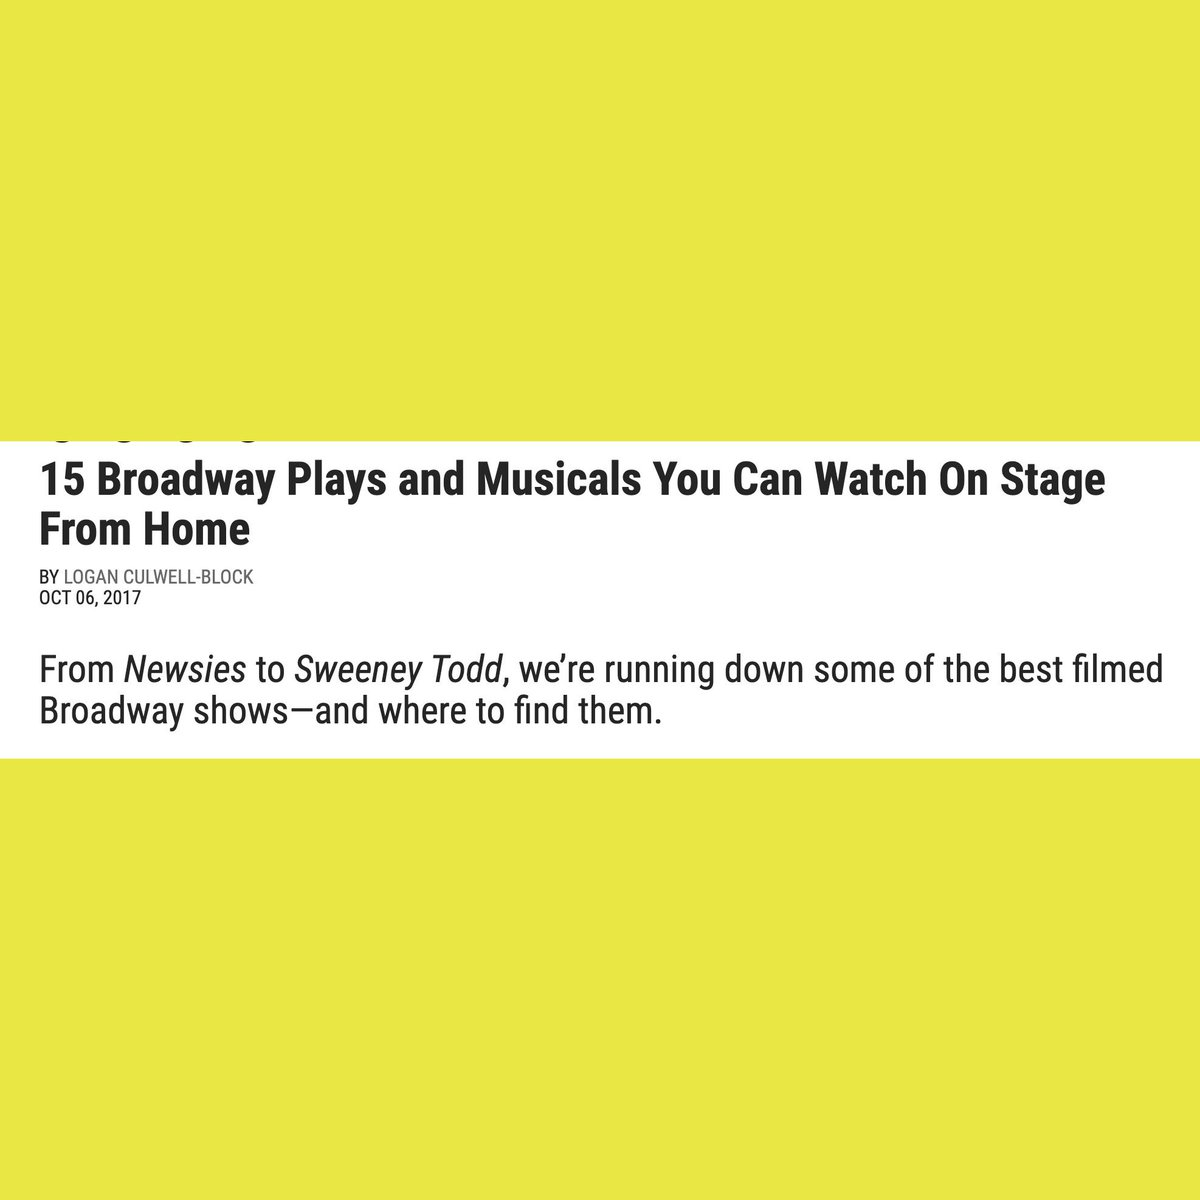 Playbook has your back with these 15 filmed Broadway shows! We miss the performing arts concert series just as much as you do. https://t.co/TROvI7gpQk https://t.co/5ht4IIPIQ4